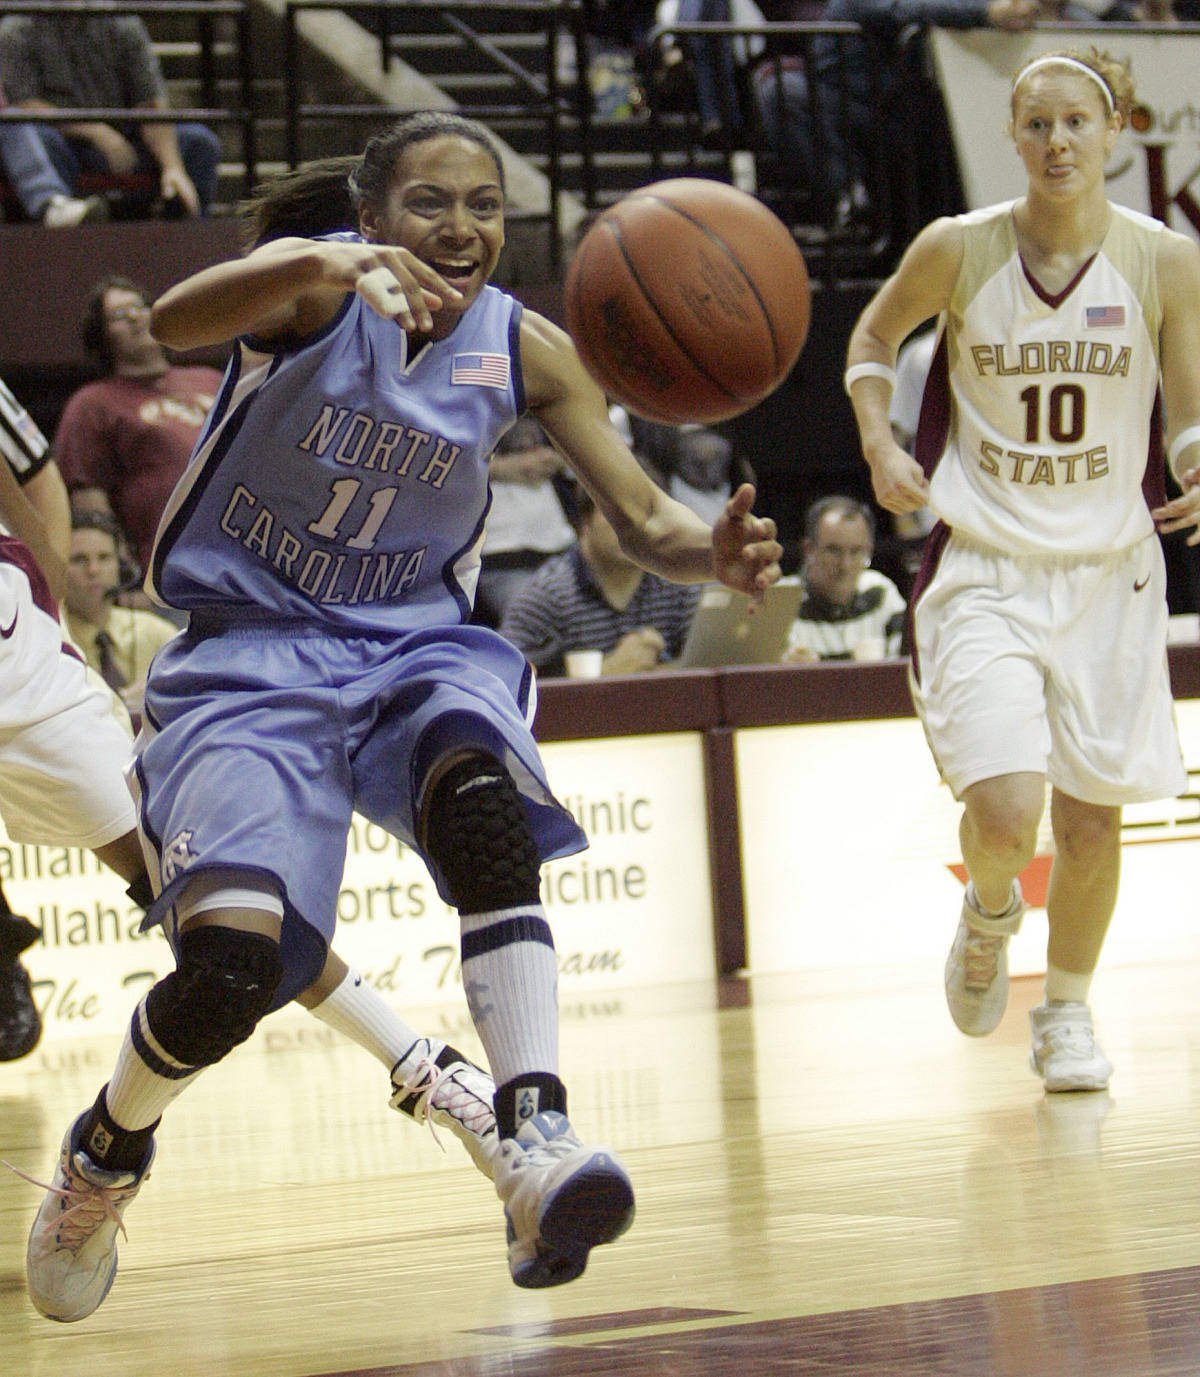 North Carolina's Alex Miller (11) tries to get a pass to a teammate as Florida State's Mara Freshour tries to catch up to the play in the first half of a college basketball game on Monday, Feb. 12, 2007 in Tallahassee, Fla. (AP Photo/Steve Cannon)